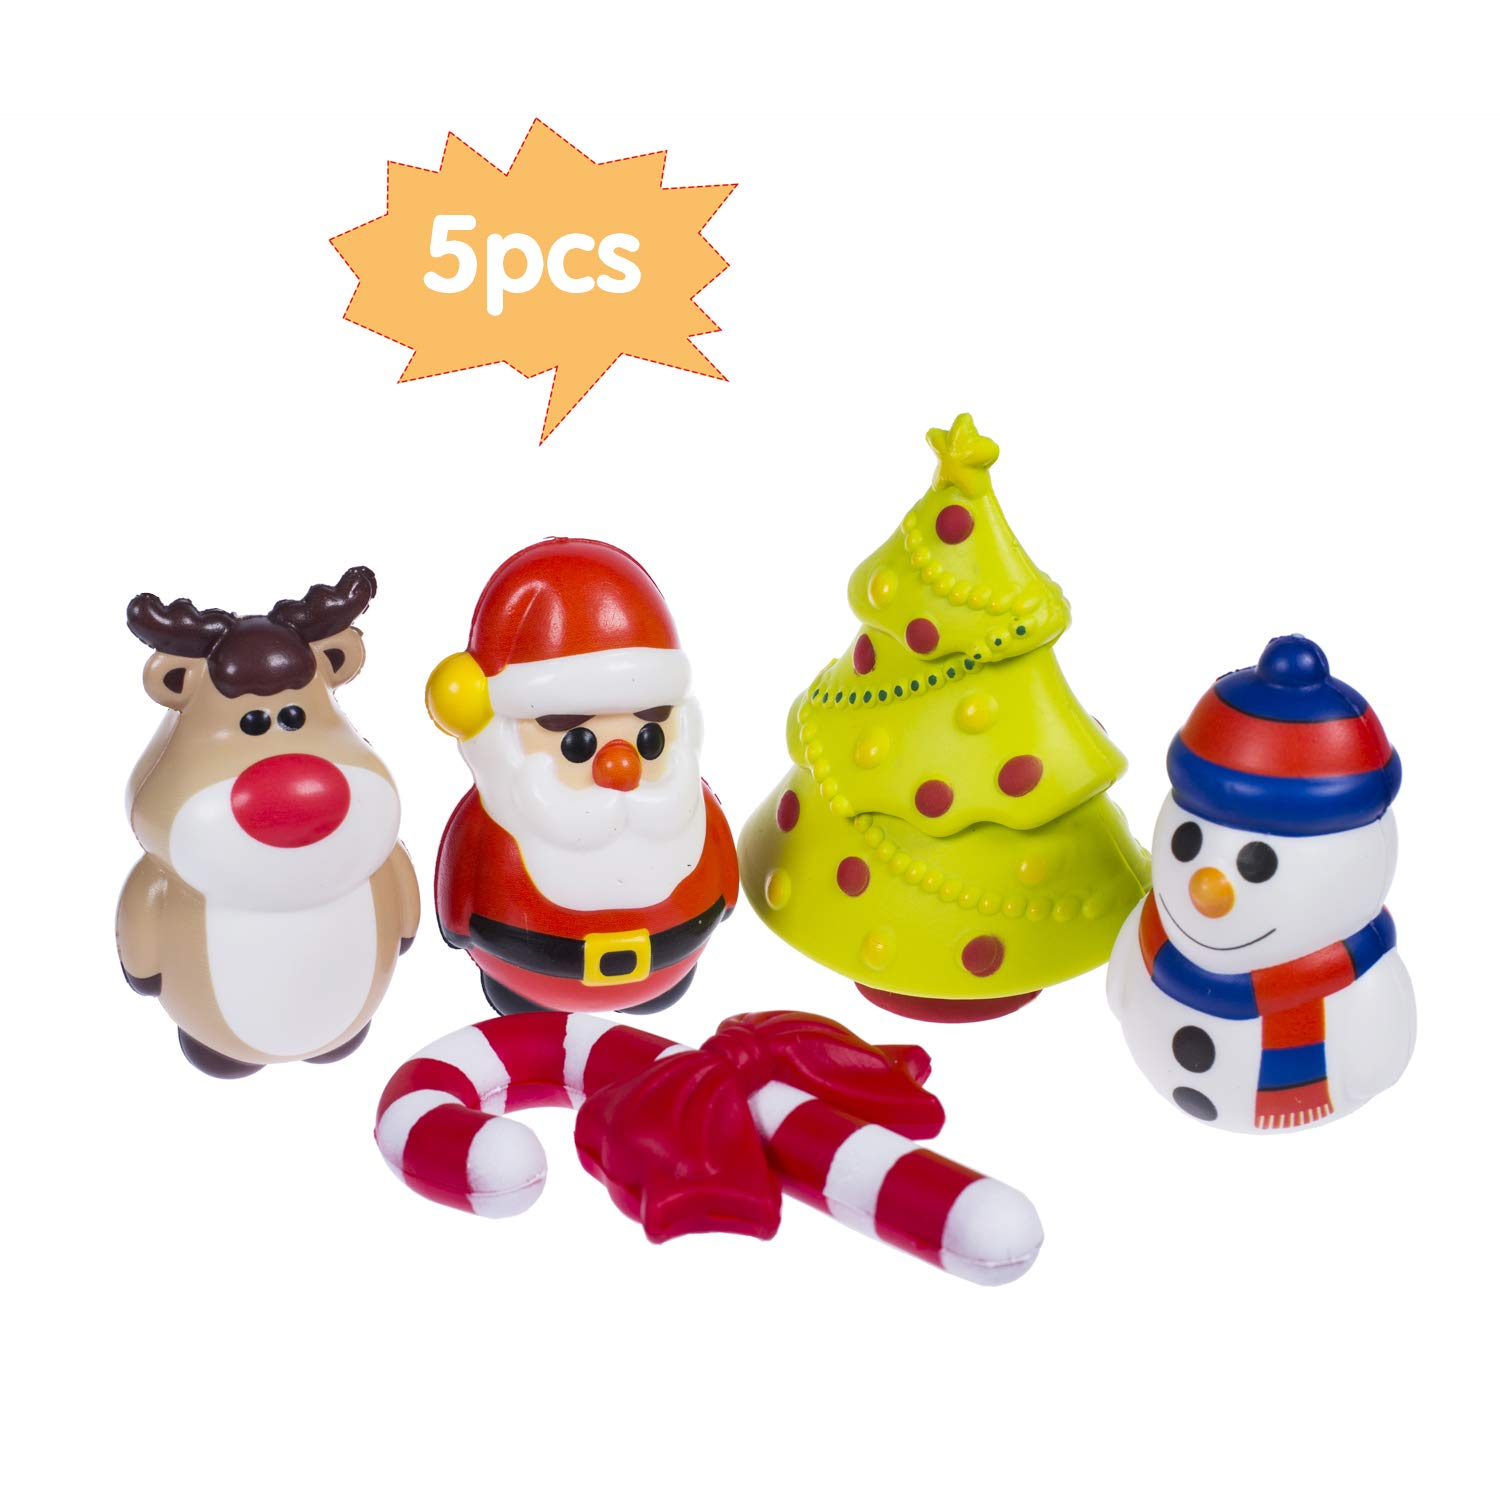 AILIMY Squishies 5Pcs Slow Rising Scented Soft Jumbo Christmas Decorations Squeeze Toys Prime Kawaii Animal Party Supply